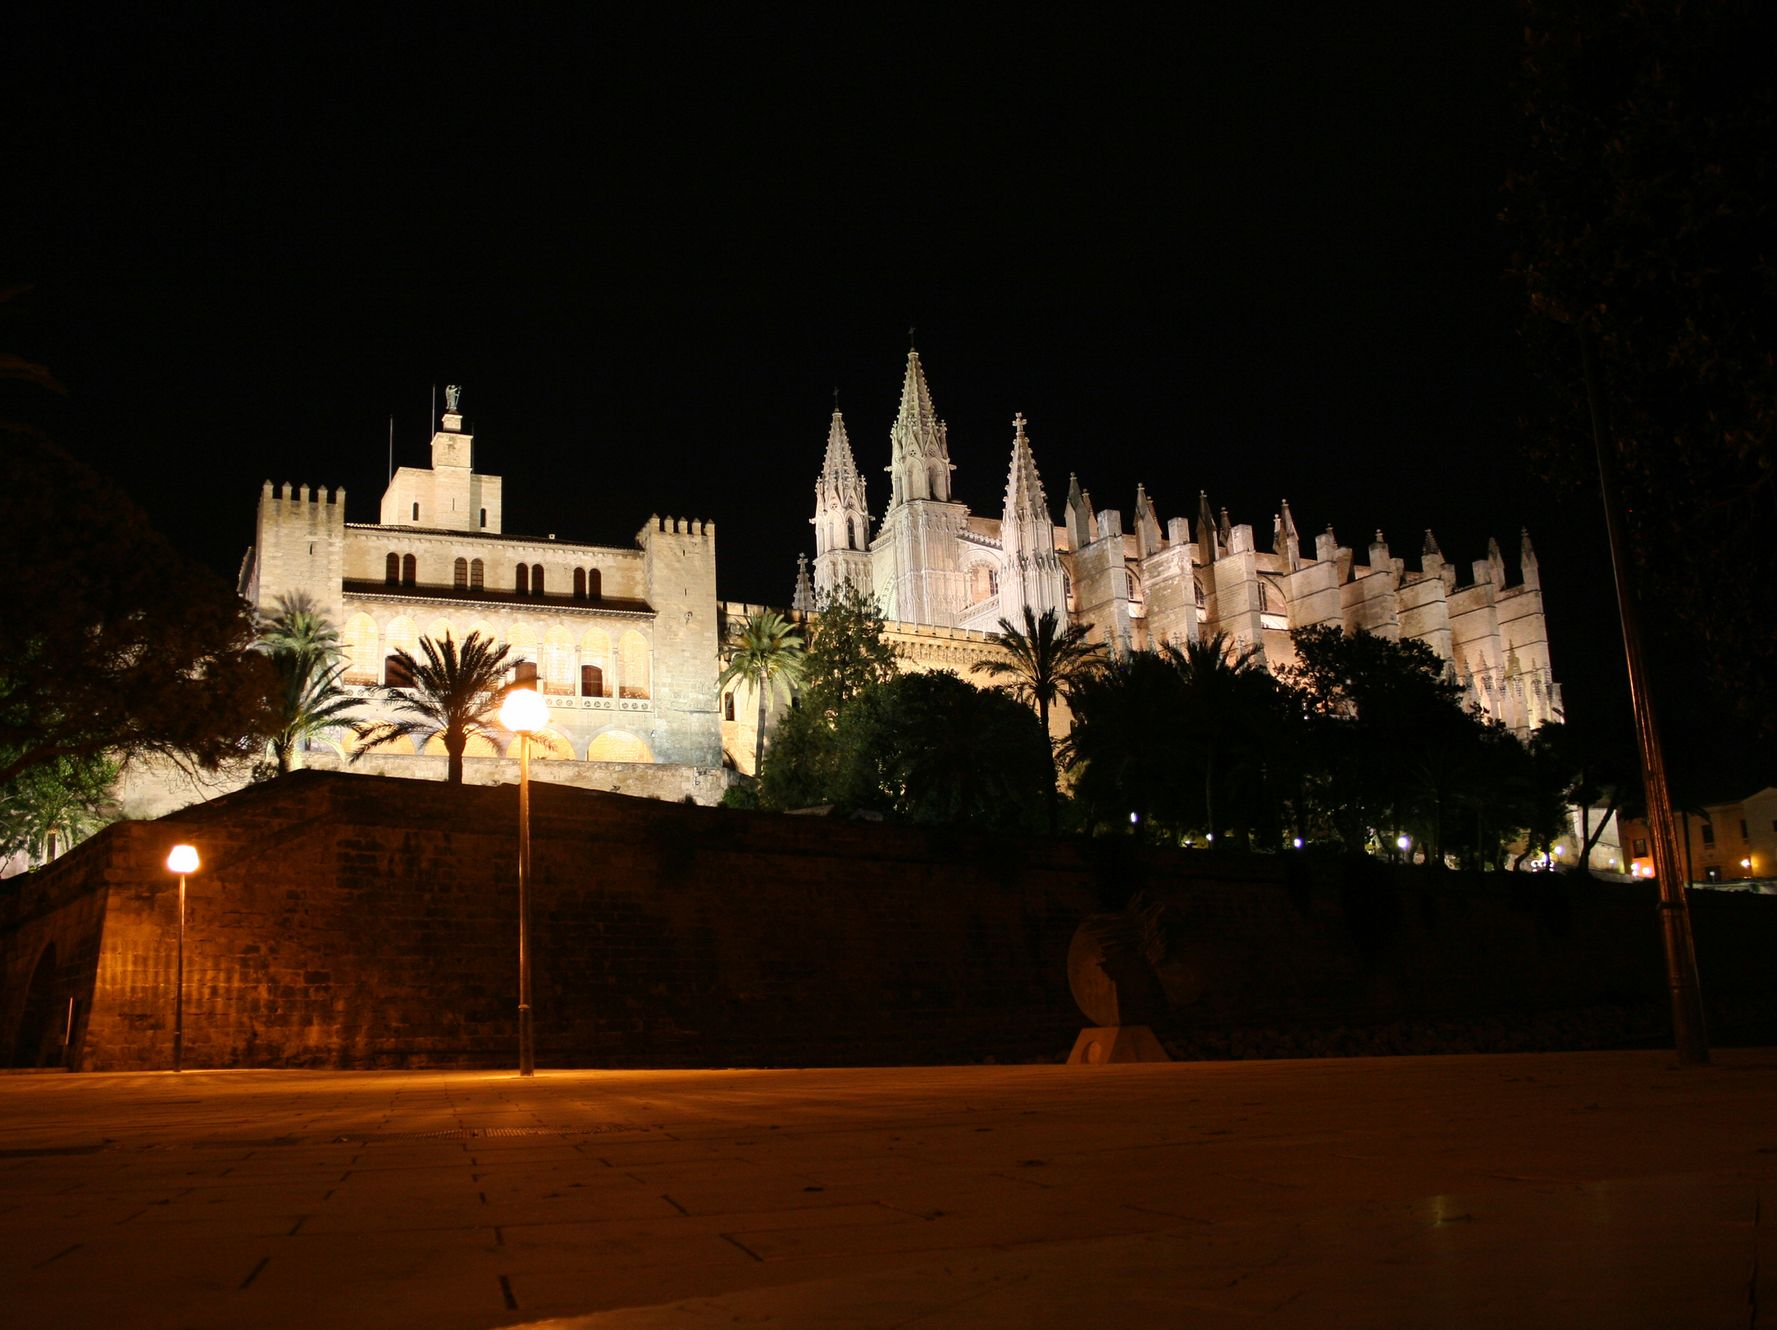 Royal Palace of La Almudaina at night - one of the top attractions in Palma de Mallorca